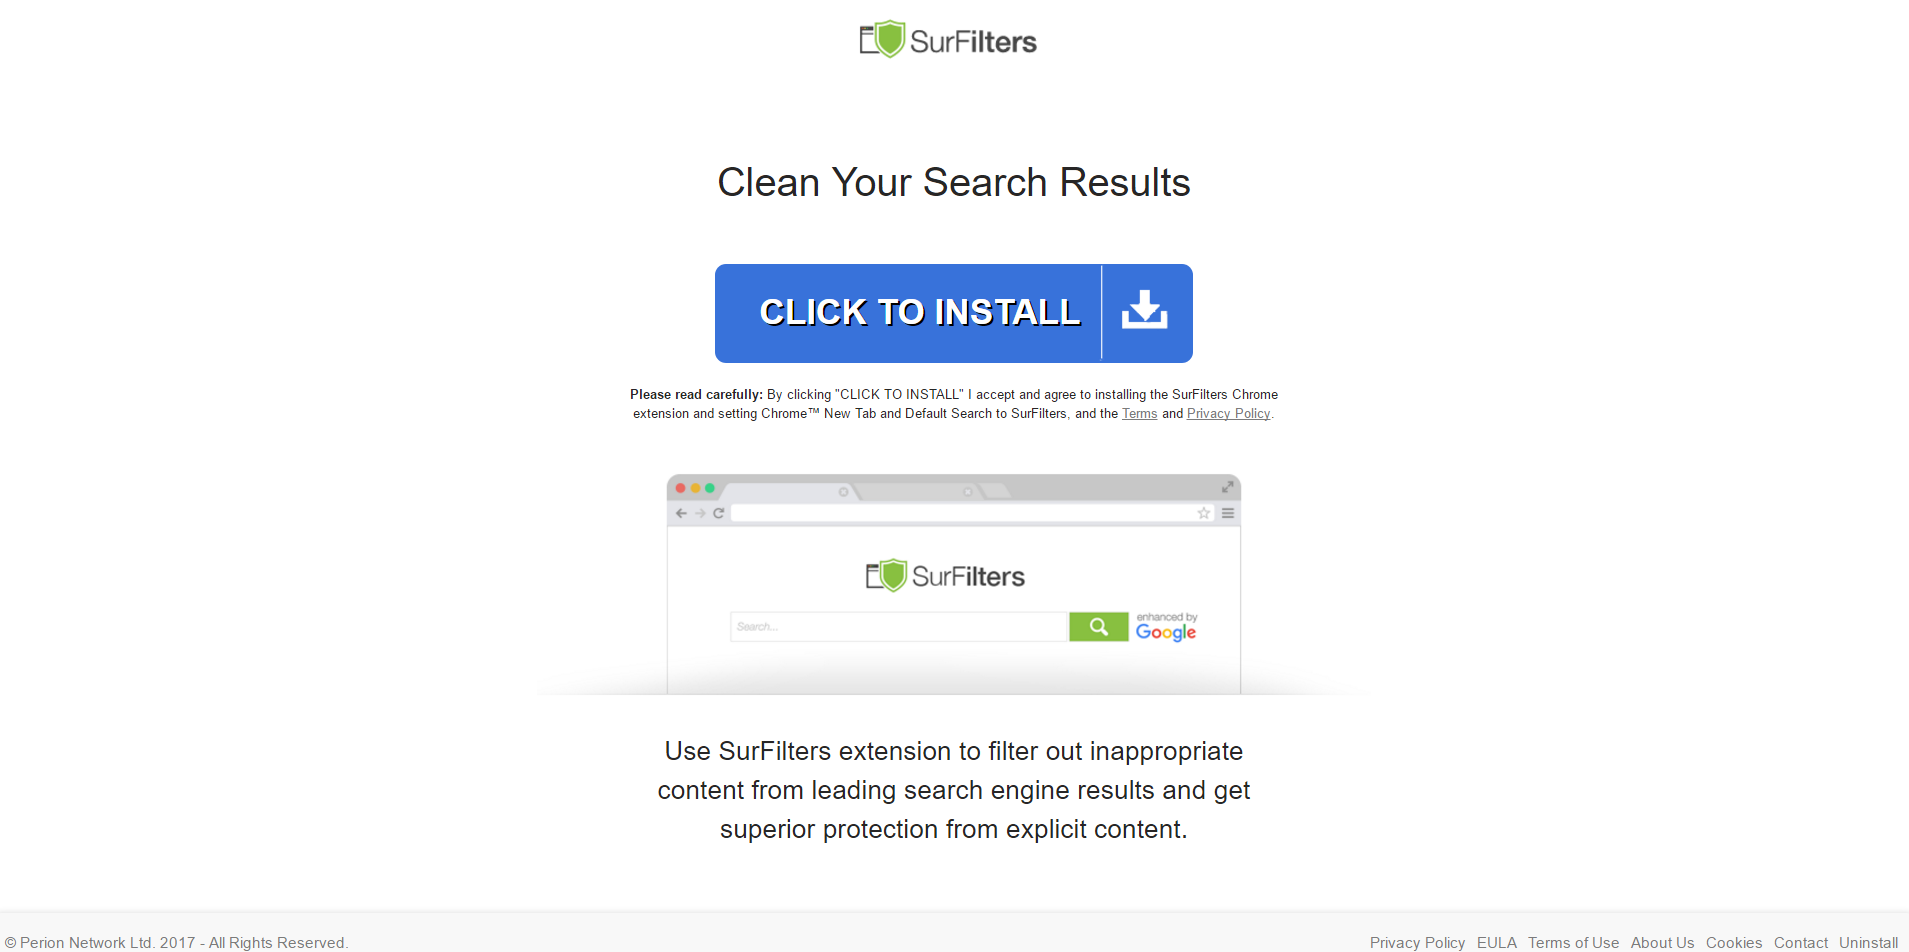 ads by SurFilters